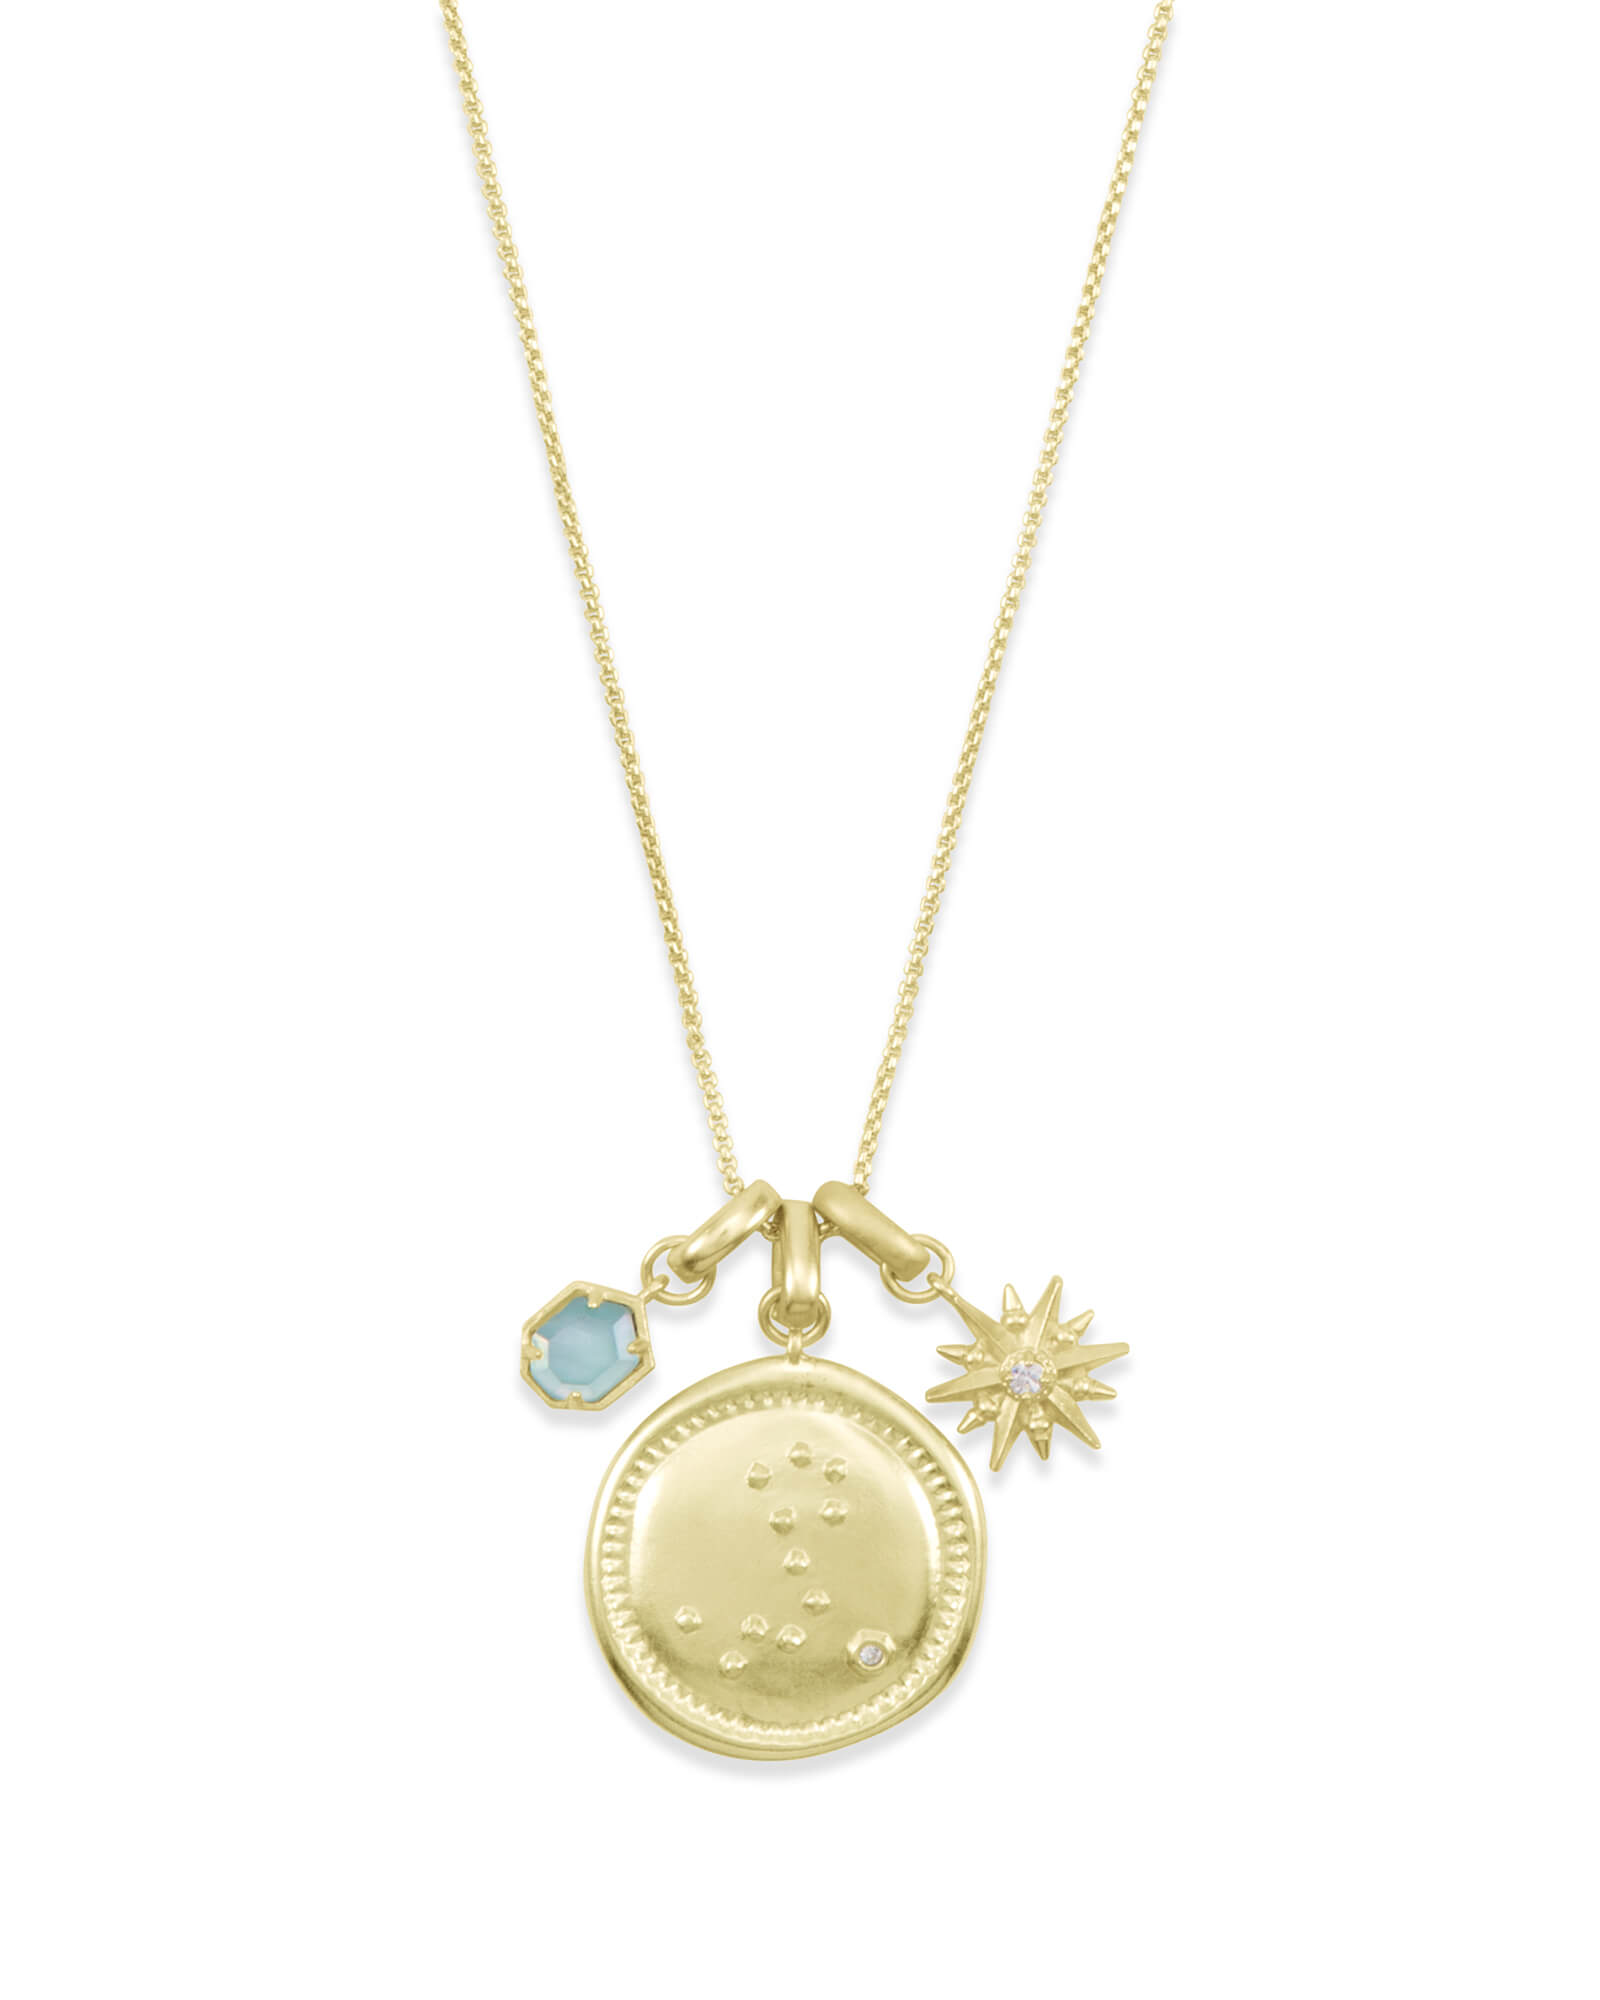 March Pisces Charm Necklace Set in Gold